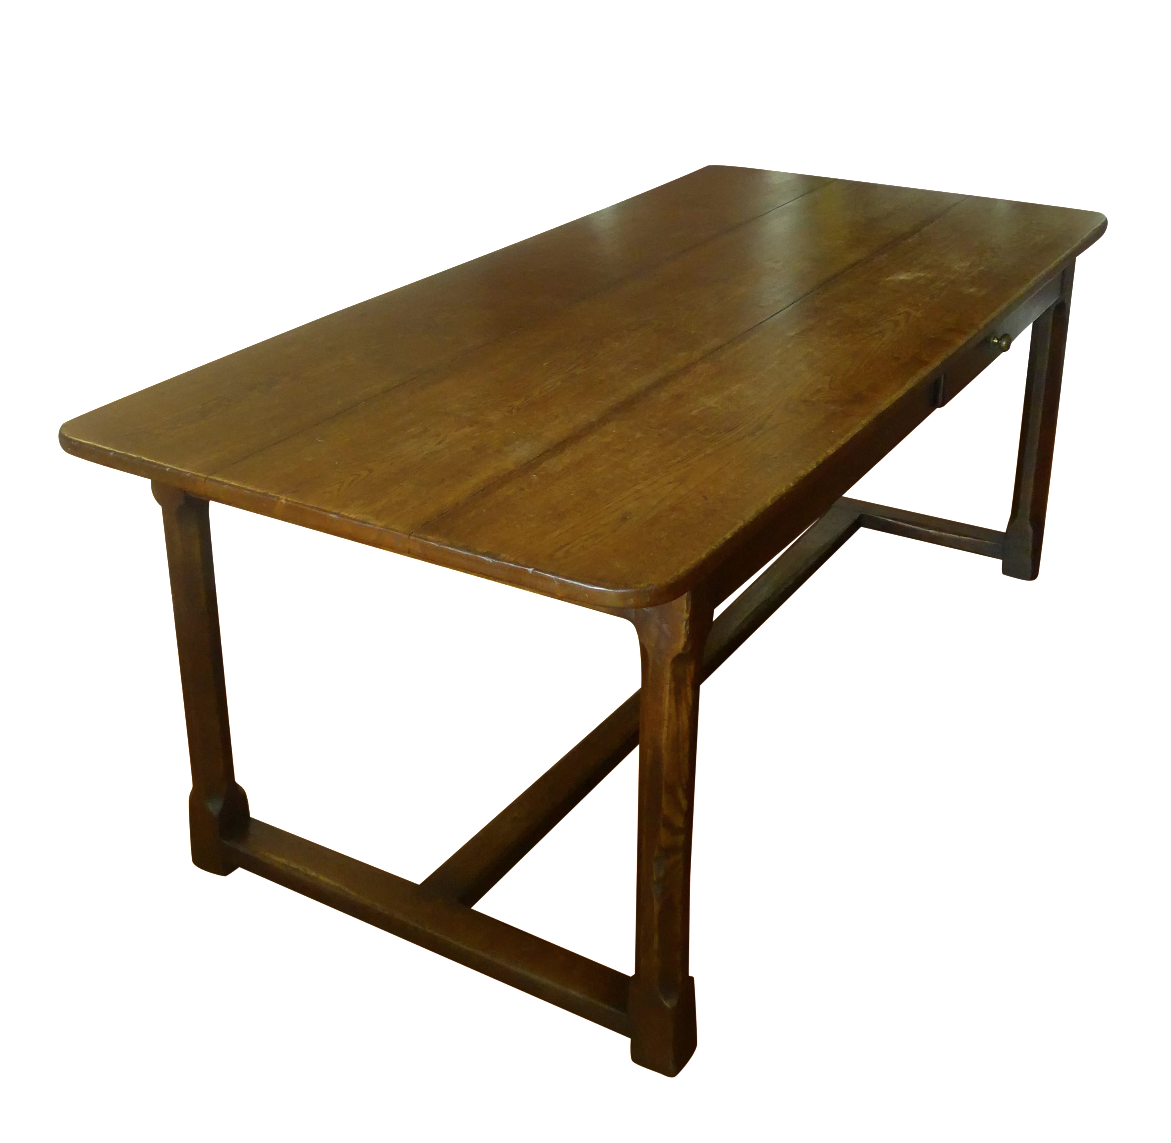 Farmhouse Kitchen Table With Drawers: Single Drawer Rustic Farm Dining Table